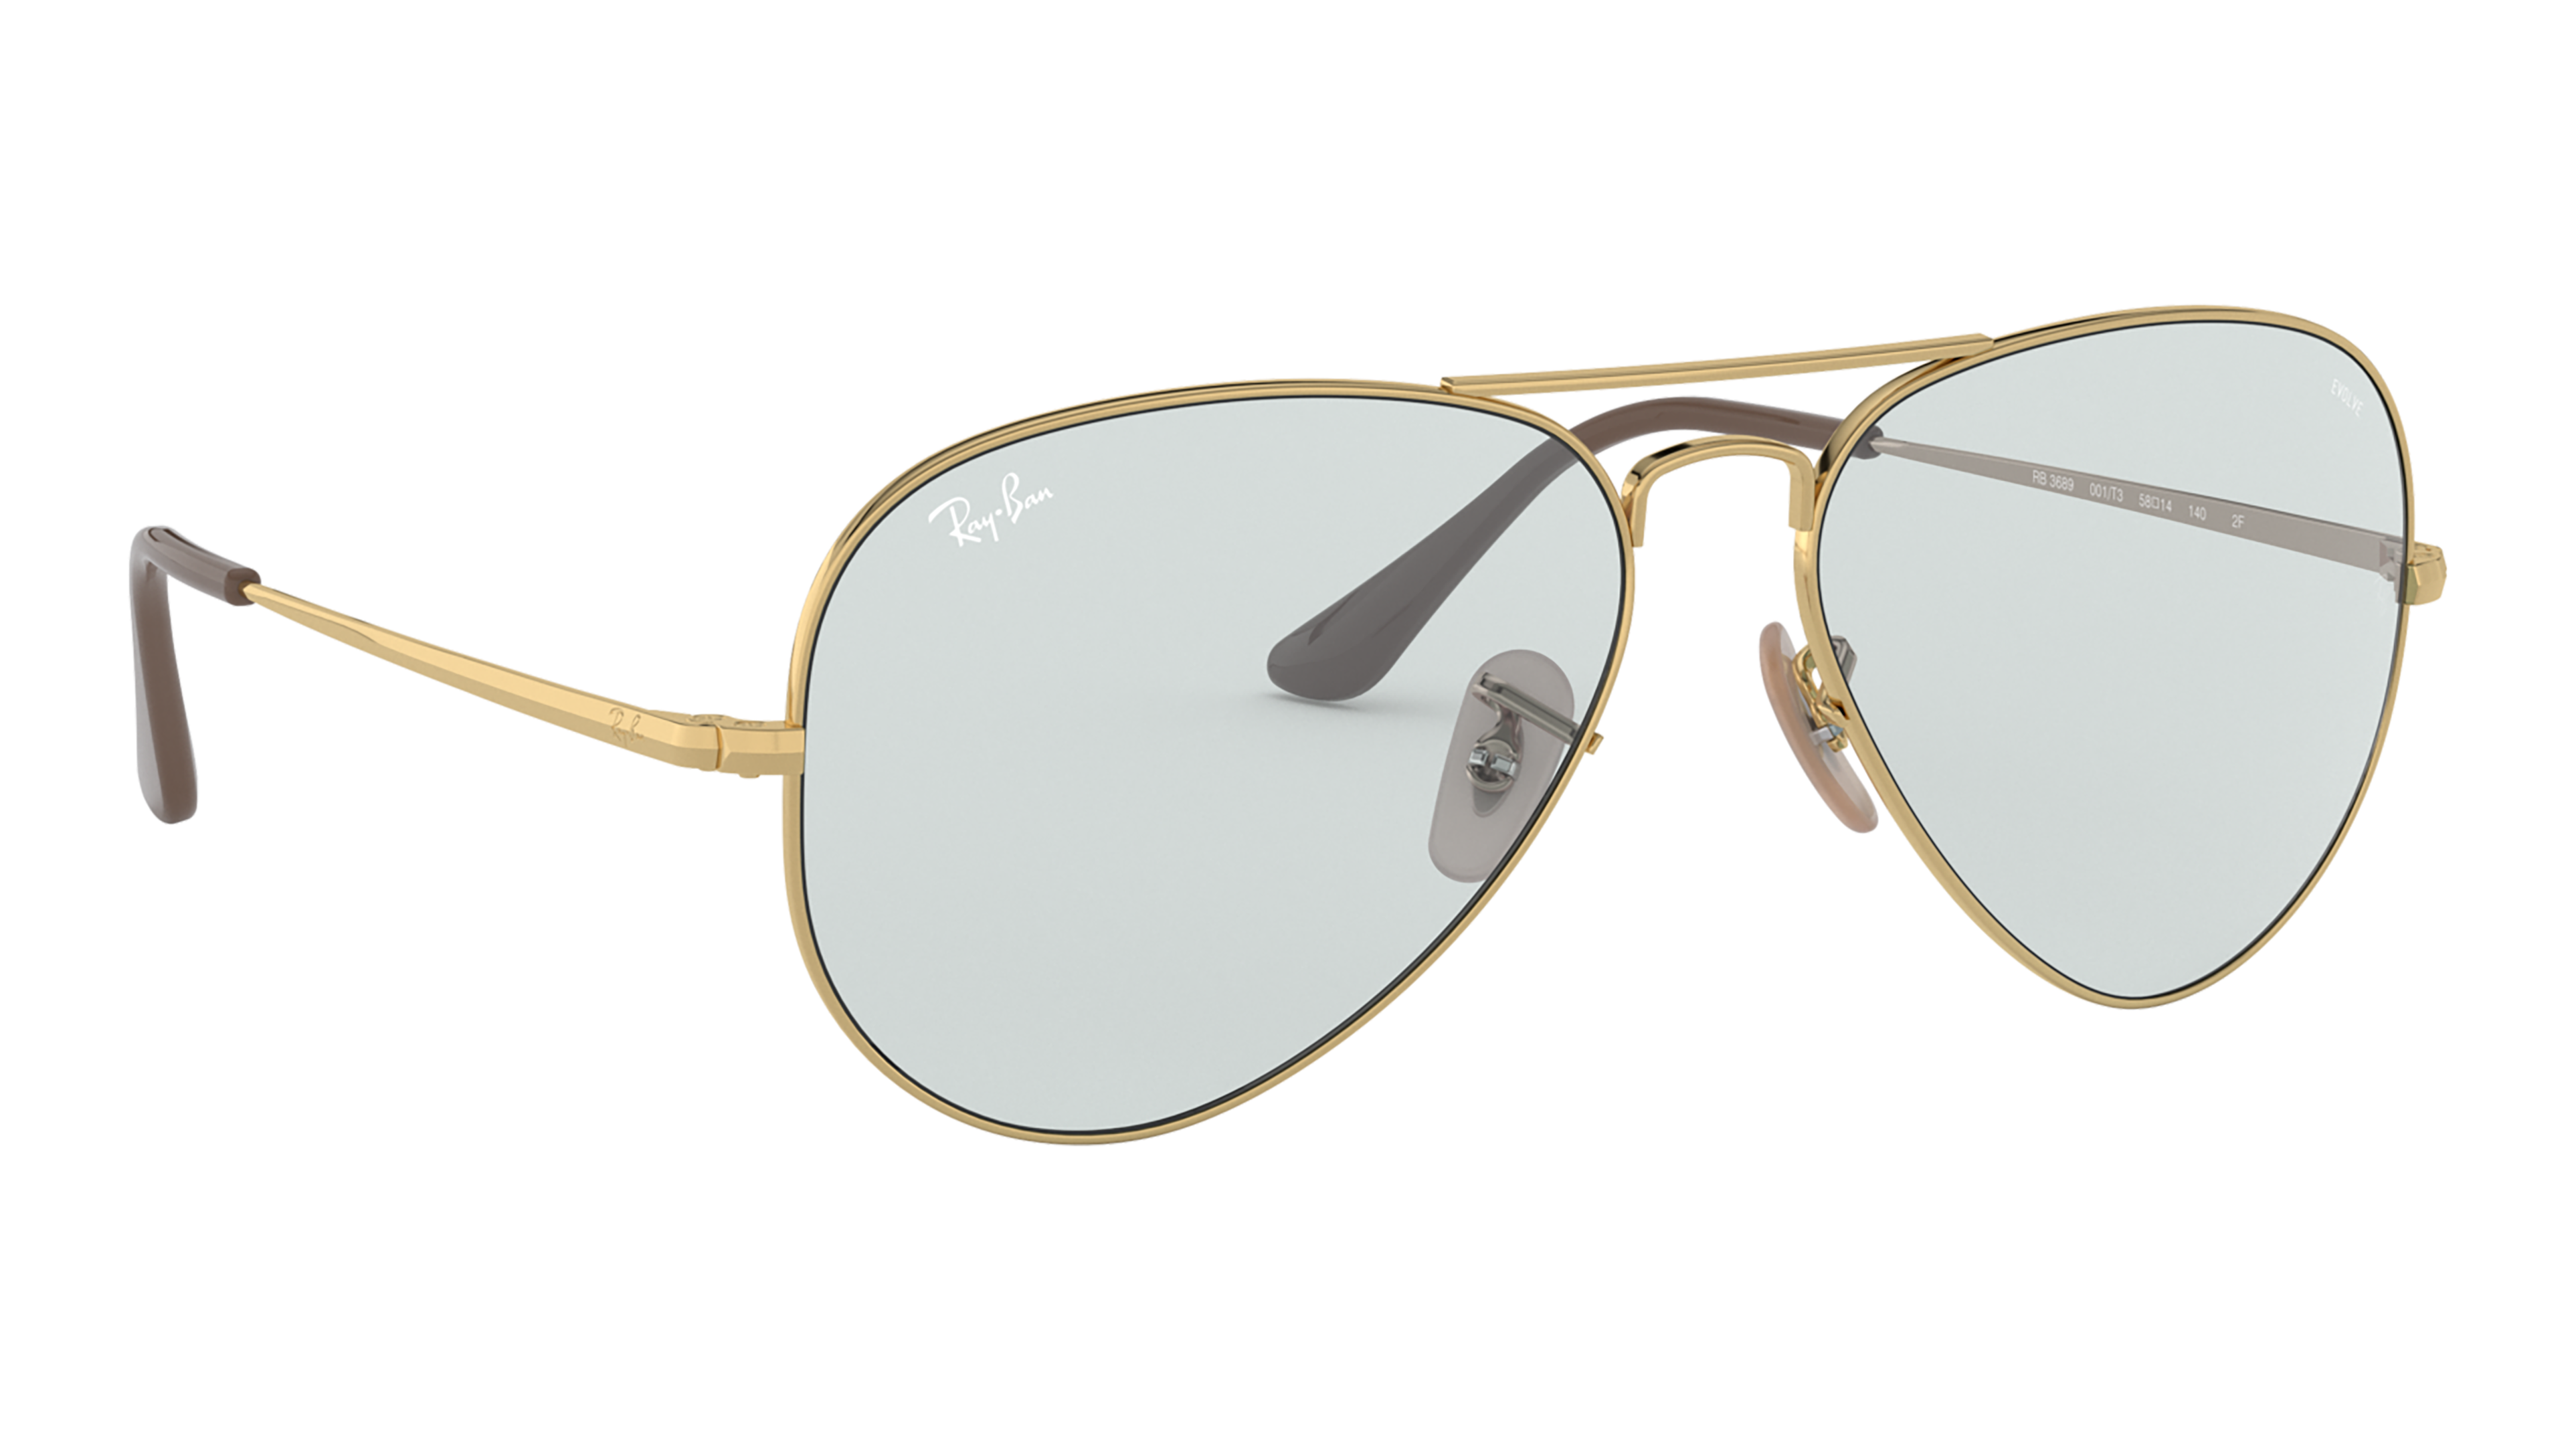 Angle_Right02 Ray-Ban Ray-Ban 0RB3689 001/T3 58/14 Goud/Blauw